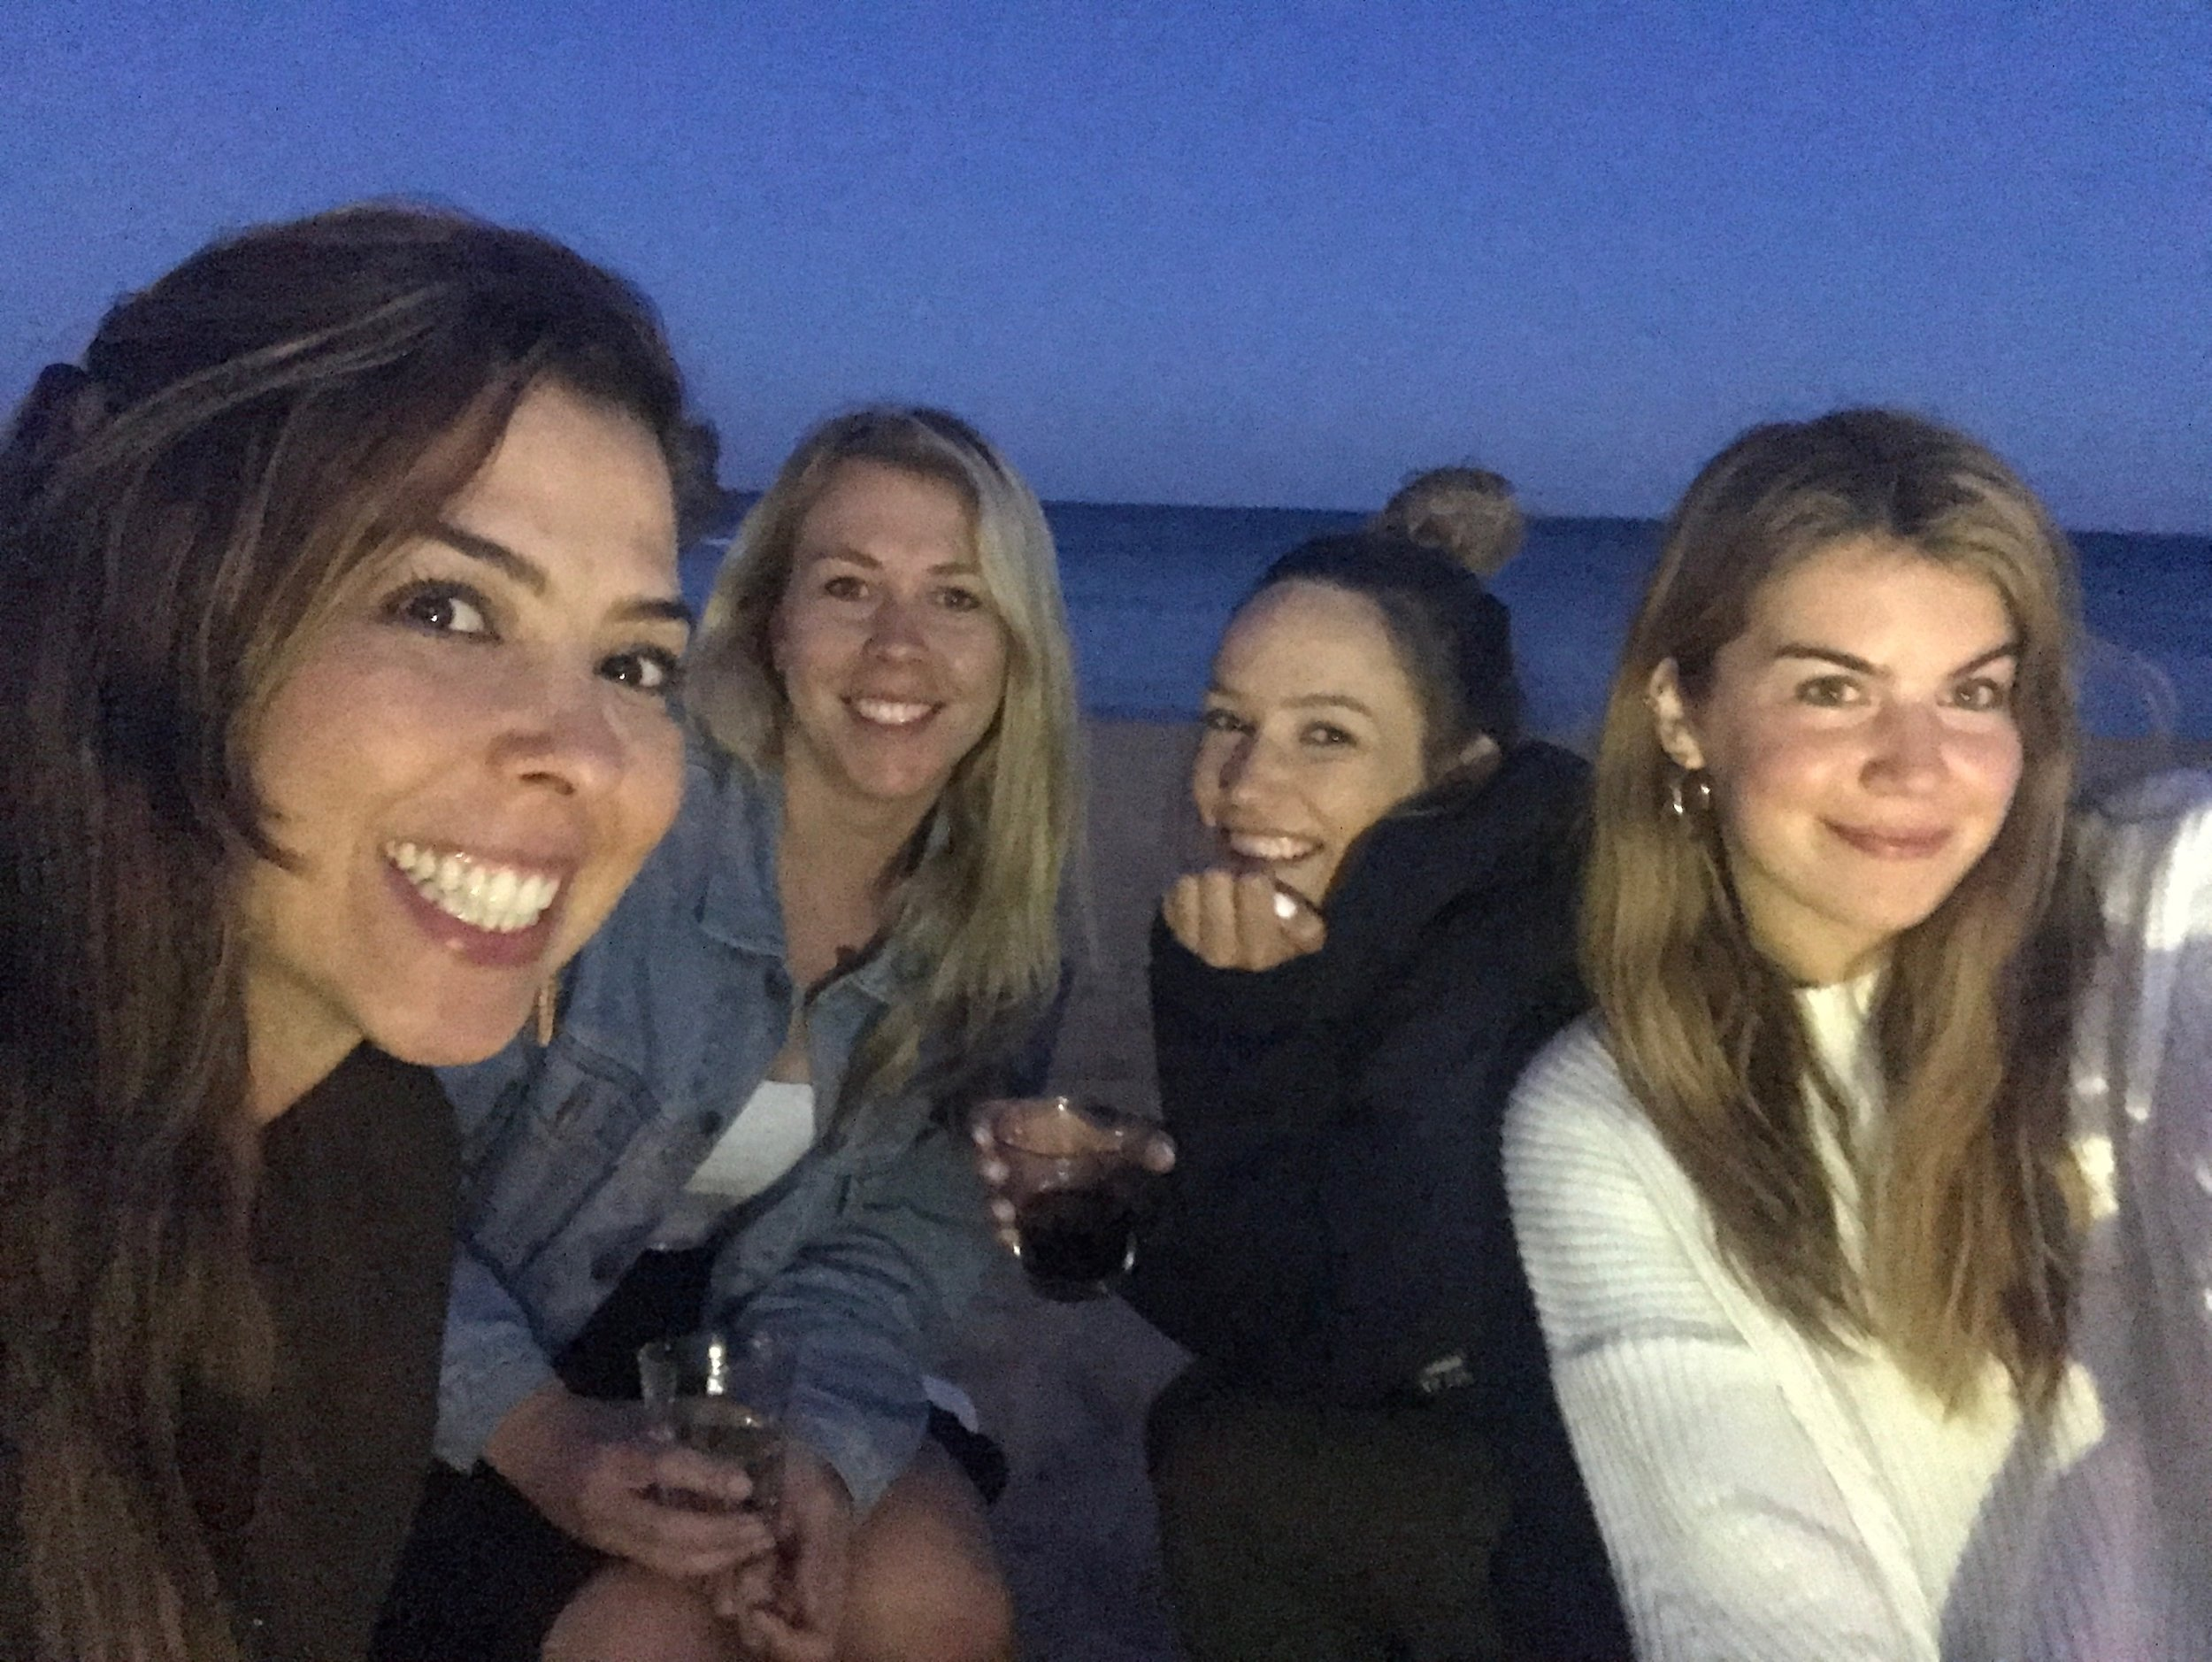 Hanging out at the beach in Albufeira with Isabela from Brazil, Kristina from Canada and Roksana from Germany